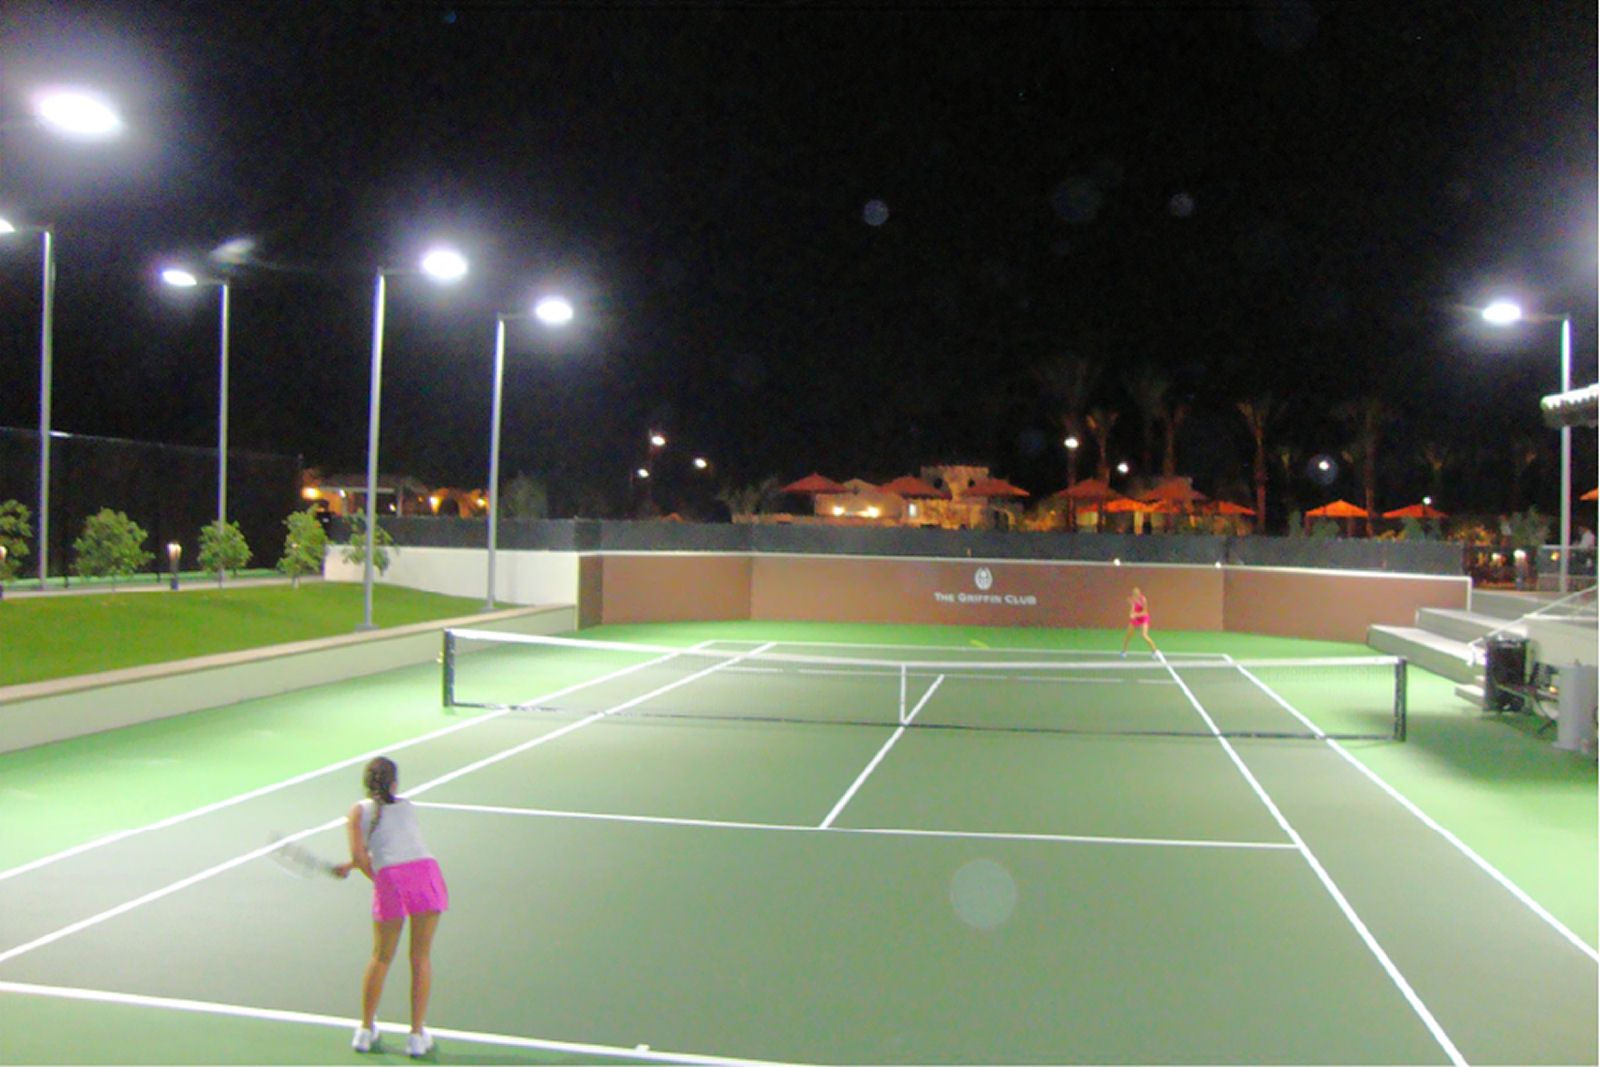 Brite Court Tennis Lighting Led For Indoor